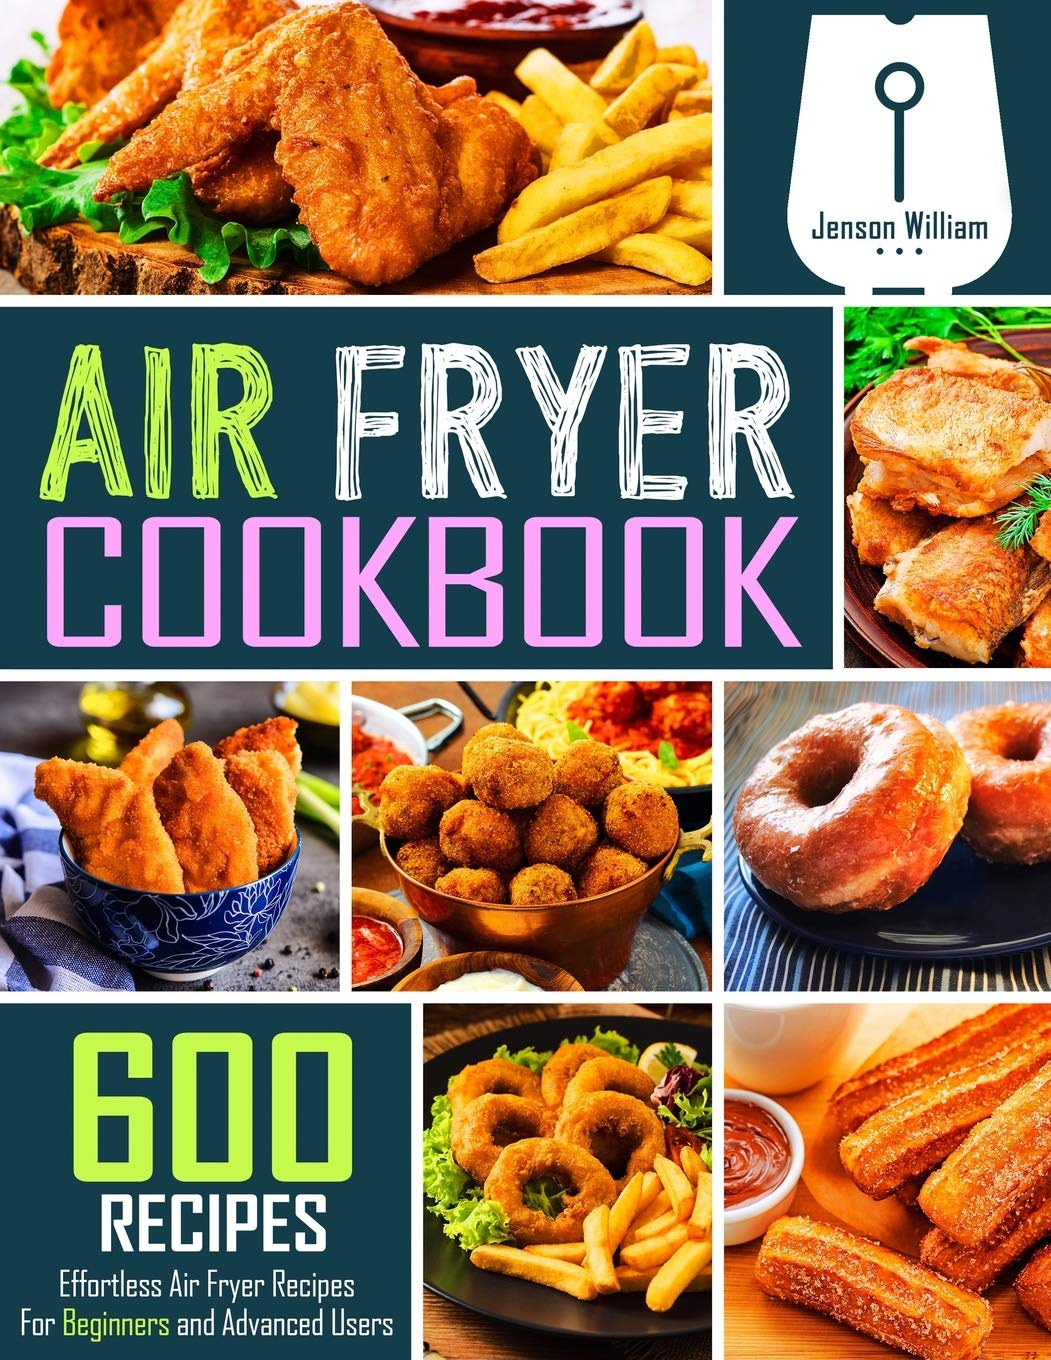 Air Fryer Cookbook: 600 Effortless Air Fryer Recipes for Beginners and Advanced Users WeeklyReviewer